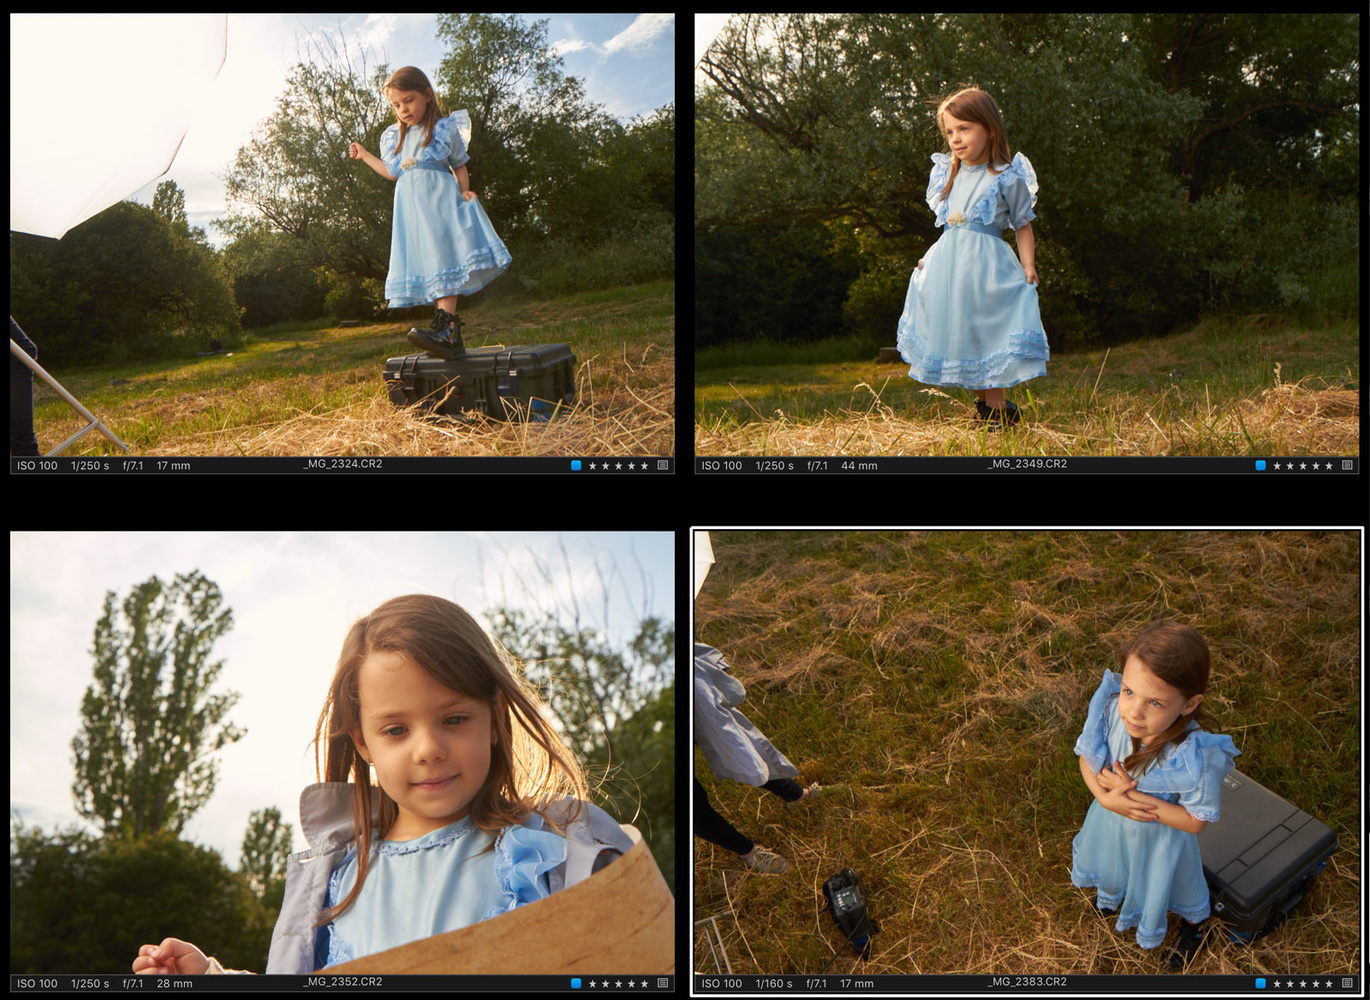 Alice in Wonderland - raw images for compositing